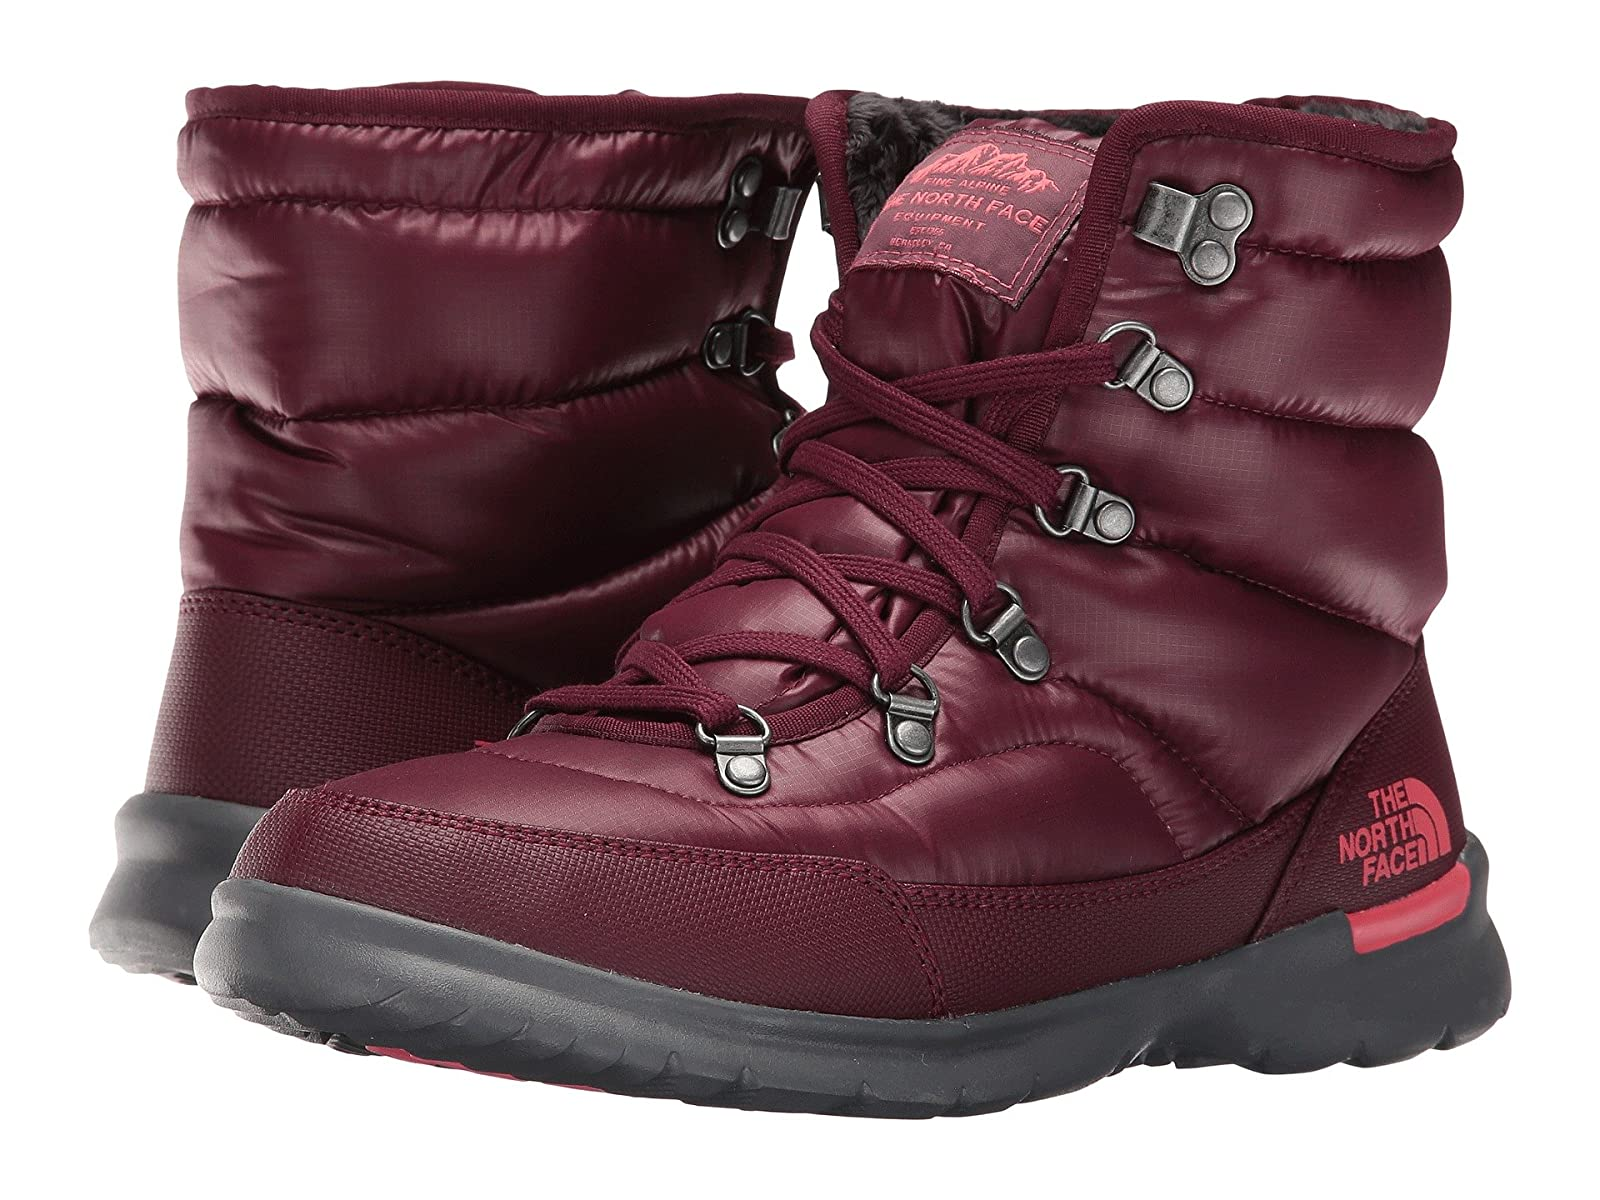 The North Face ThermoBall Lace IICheap and distinctive eye-catching shoes